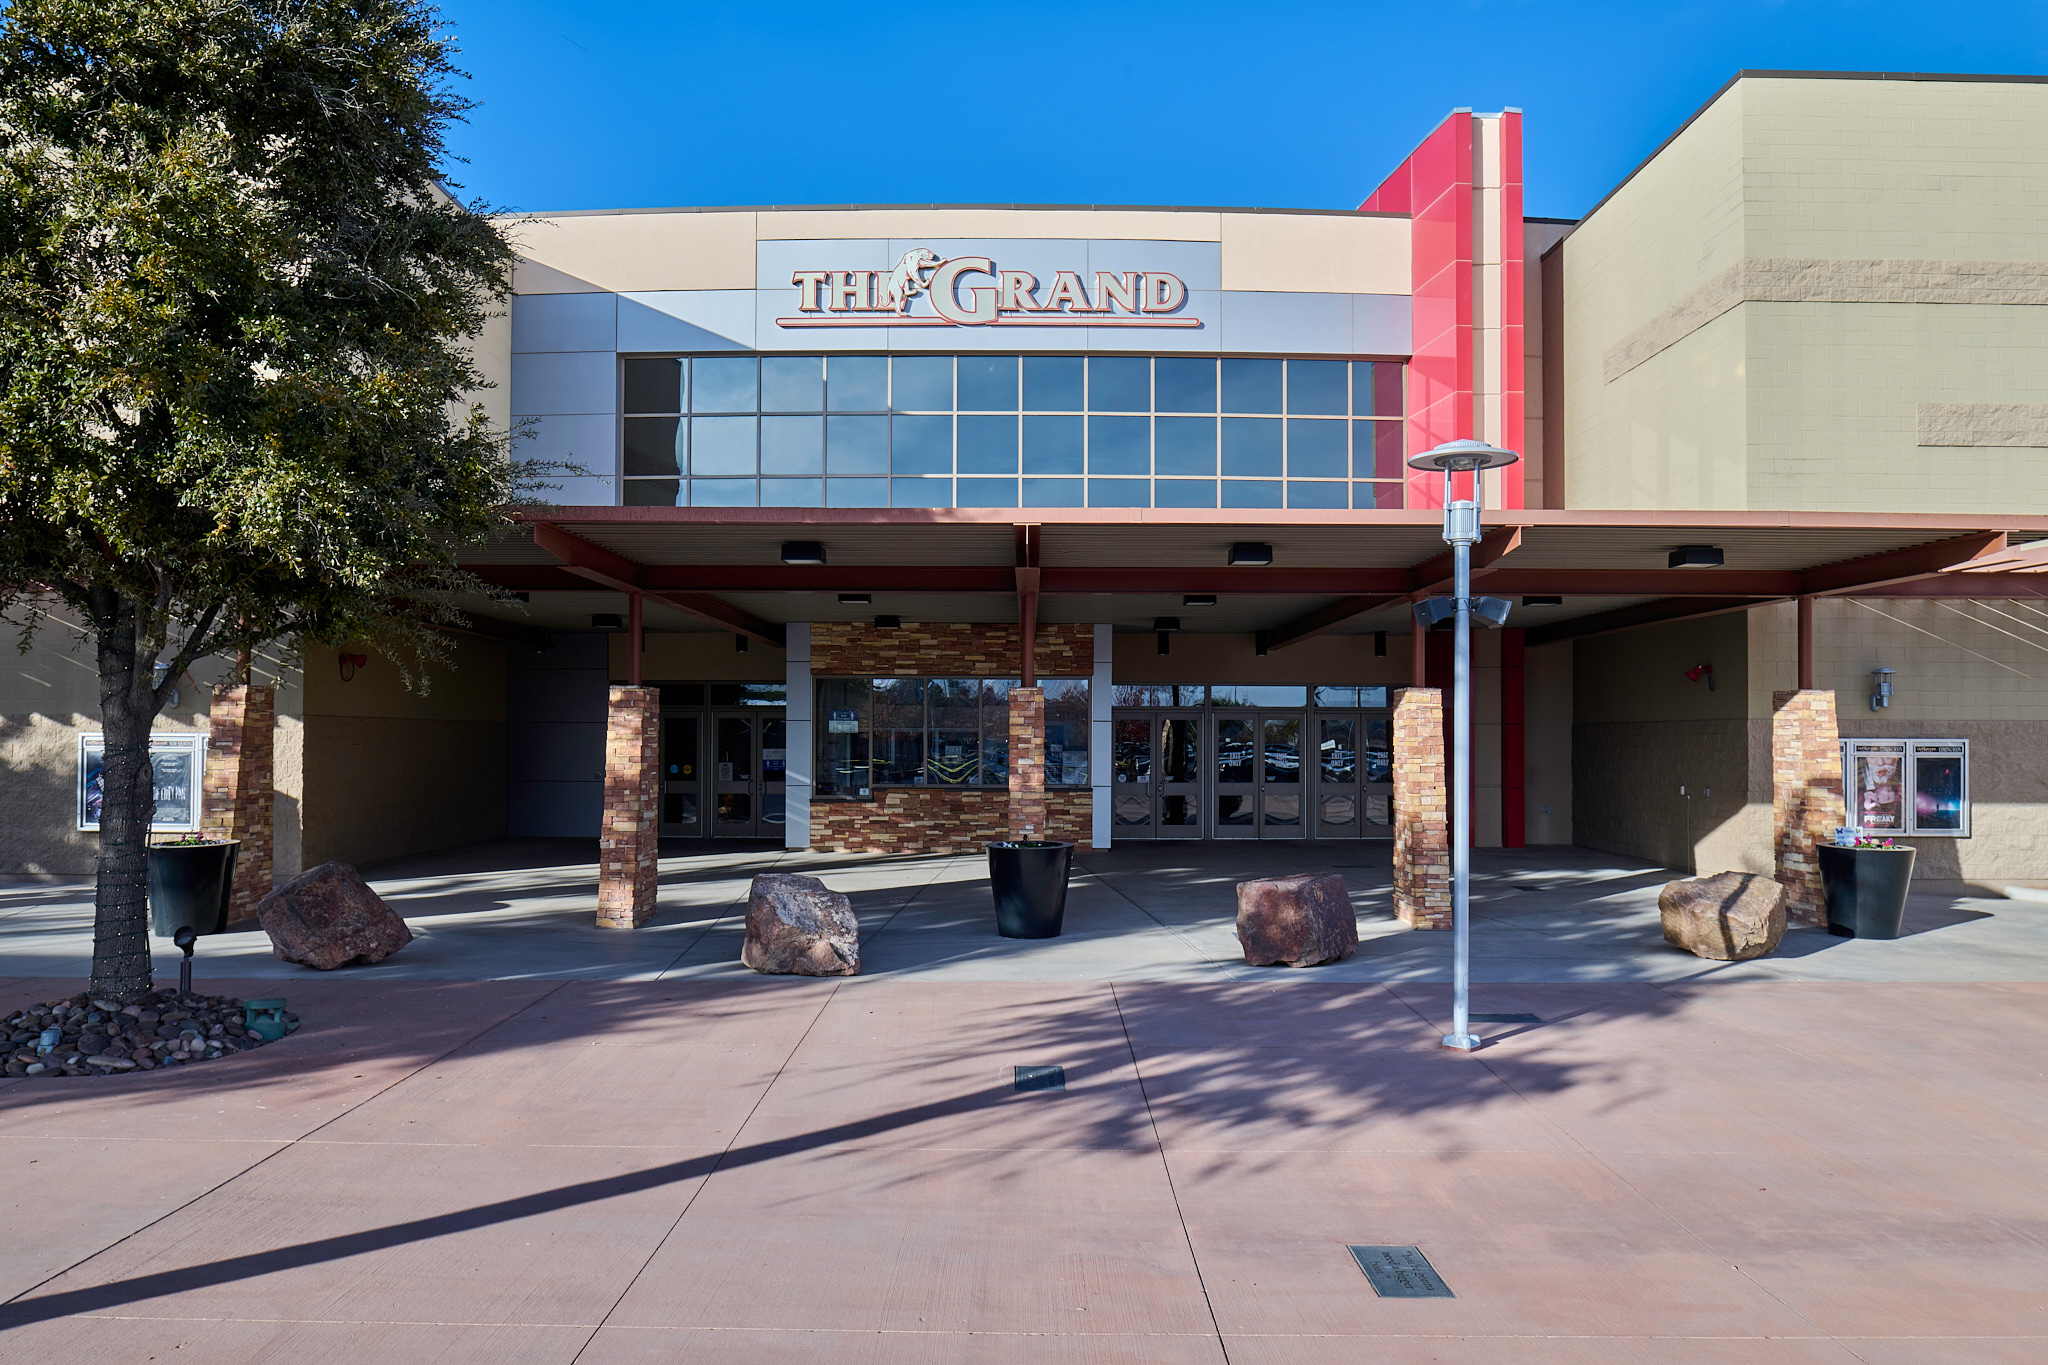 The Grand theatre at Freedom Crossing